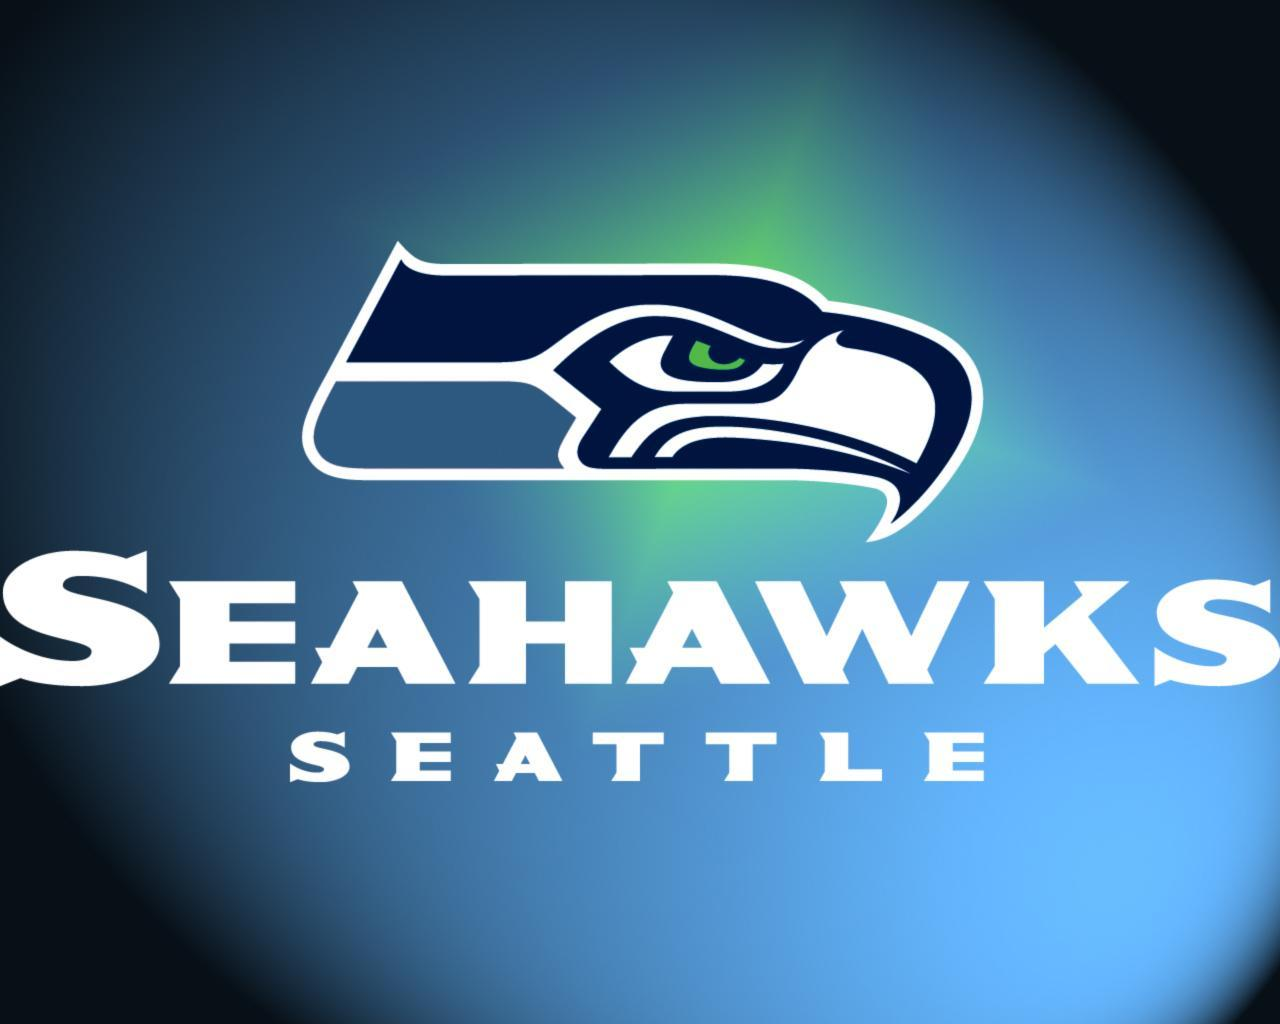 Seattle Mariners Wallpaper Iphone All Seahawks Backgrounds Images Pics Comments Facebook